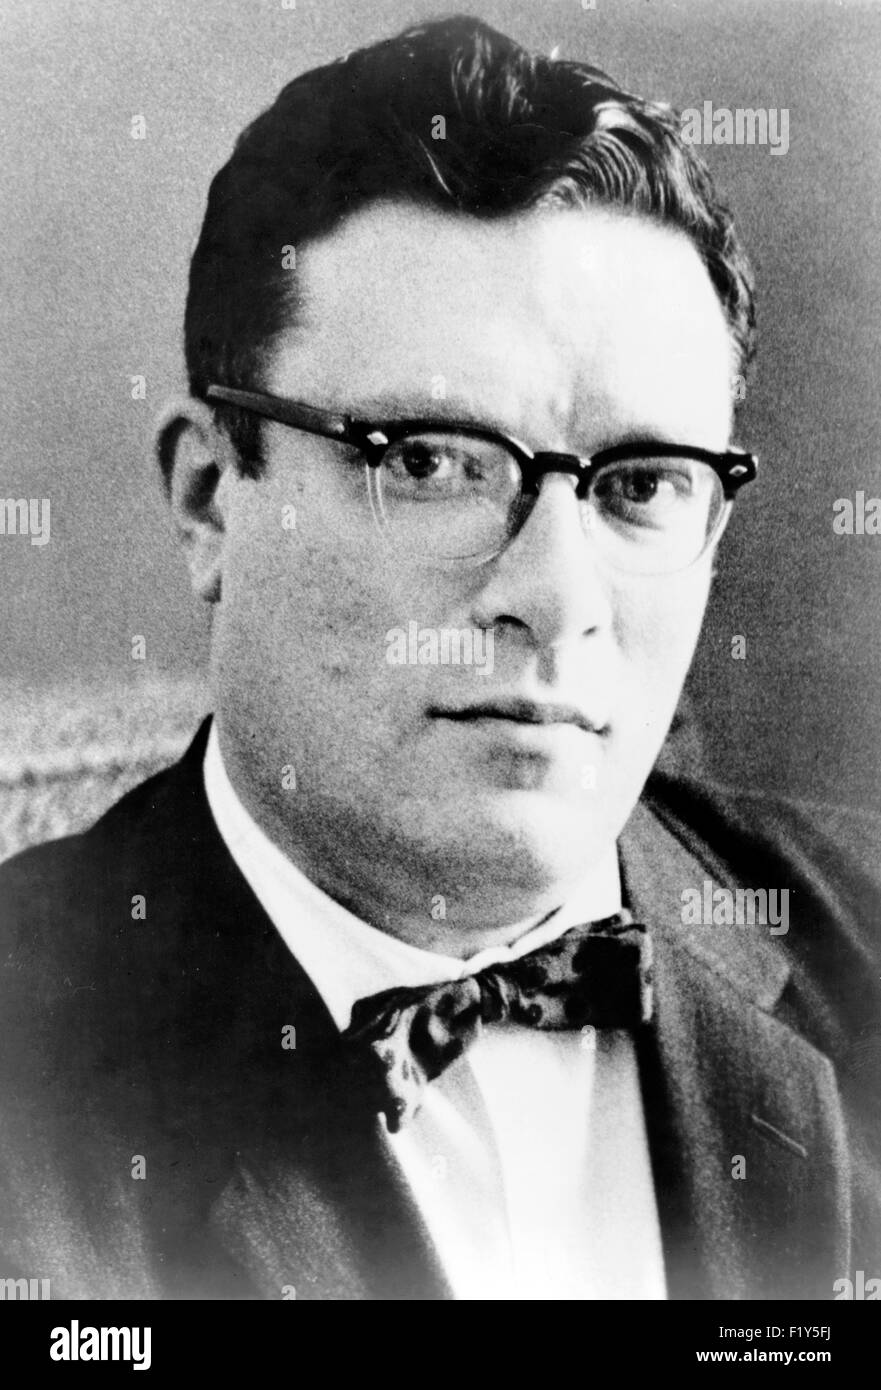 ISAAC ASIMOV (1920-1992) American science fiction writer about 1965 - Stock Image